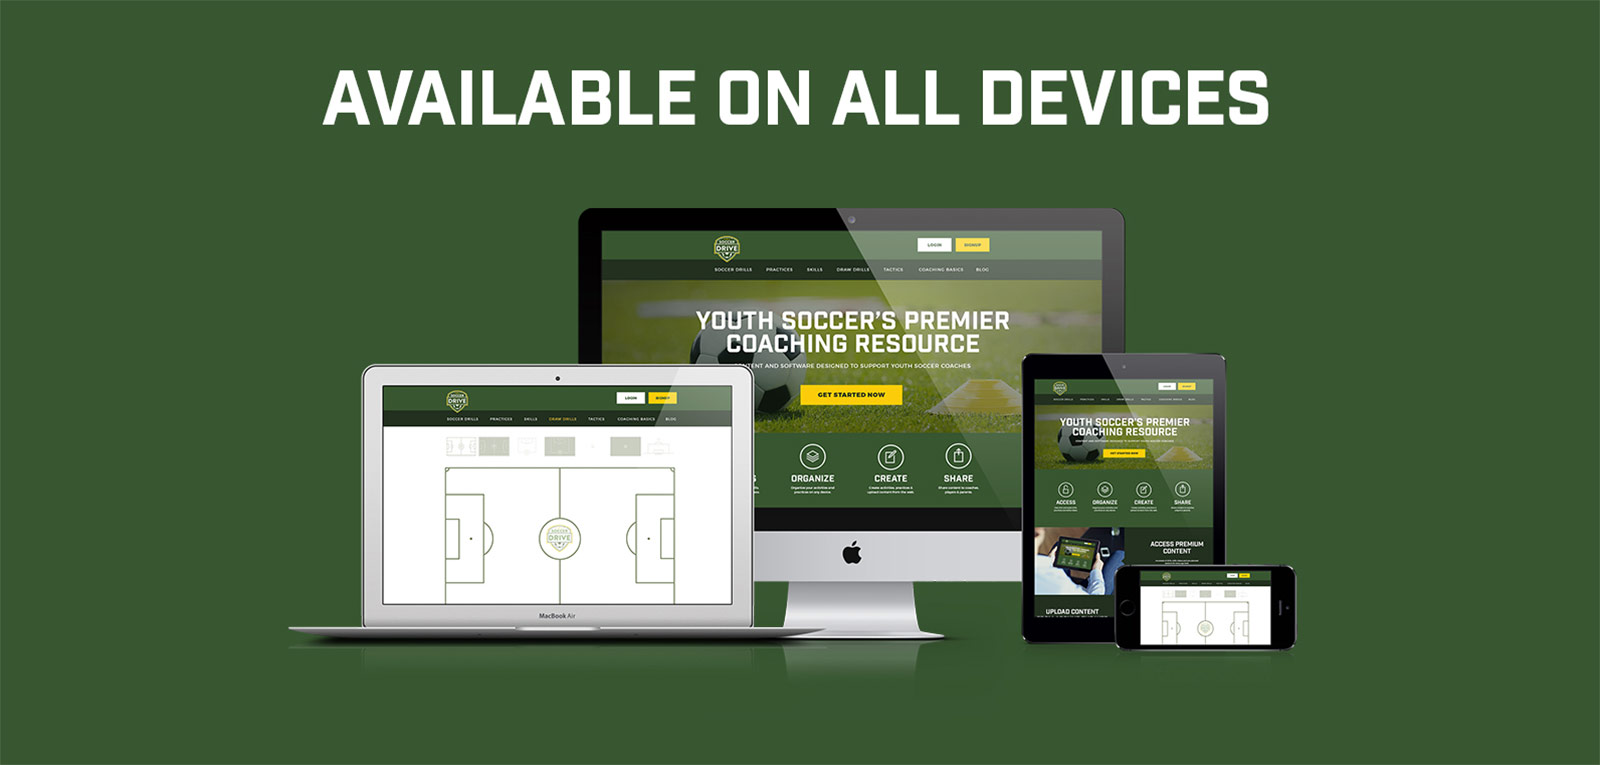 shows mobile device, tablet, and desktop displaying soccerdrive.com to show that it is accessible on all devices